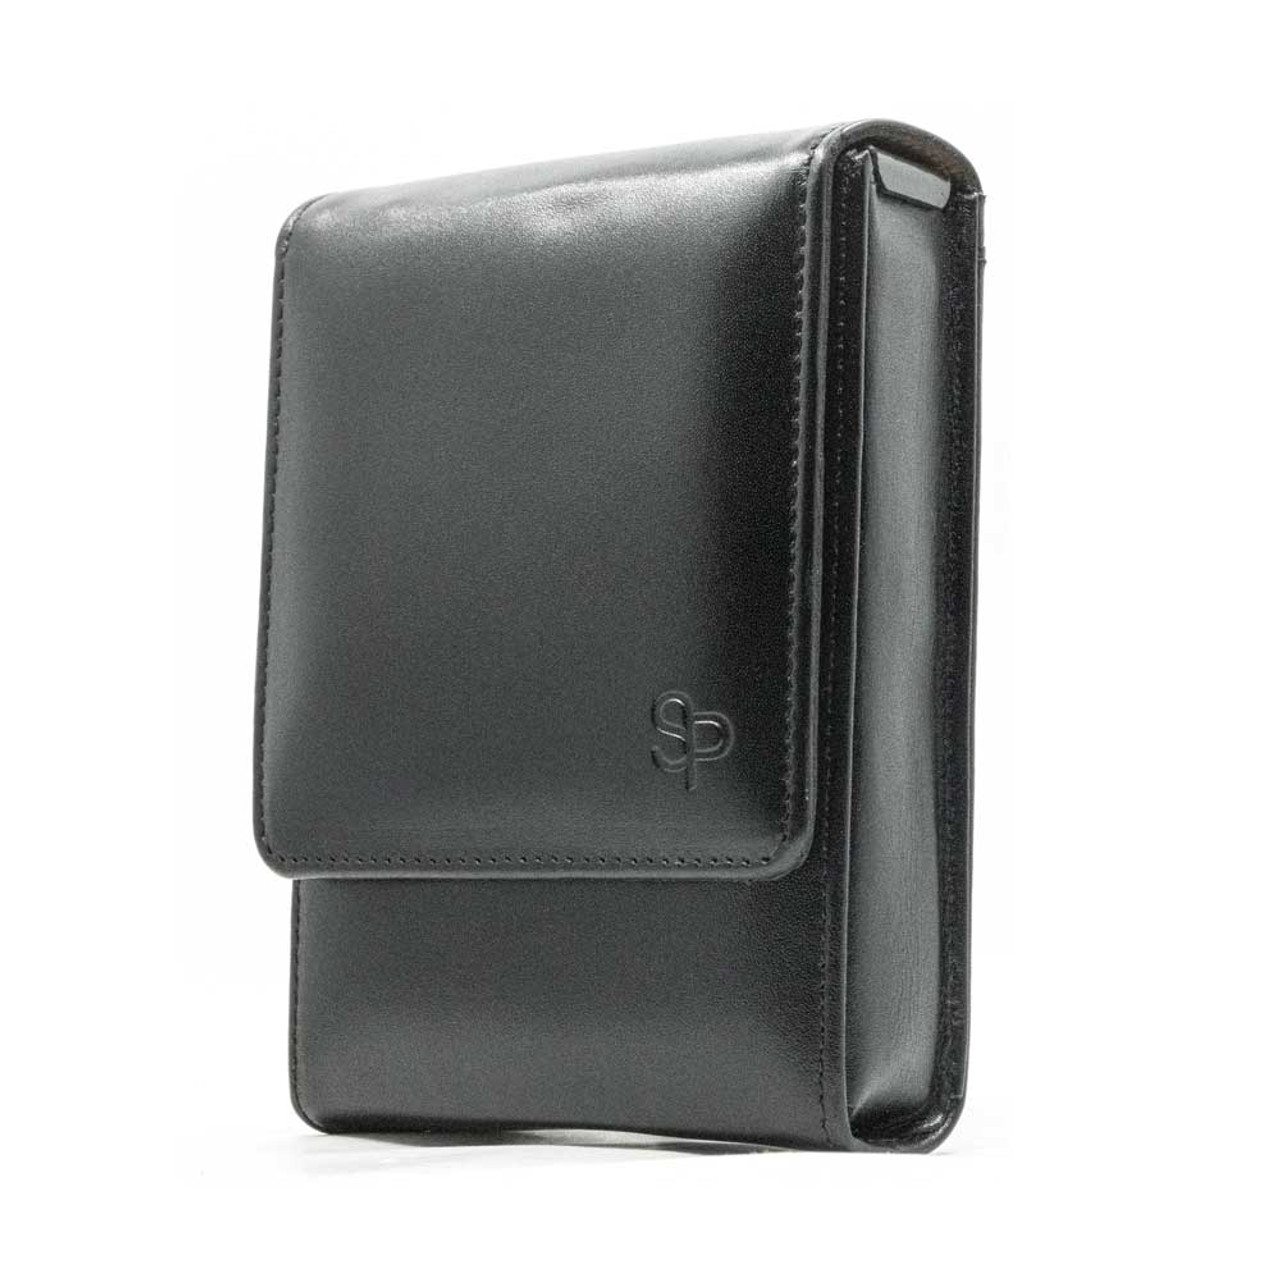 Springfield XDE 9mm Black Leather Holster